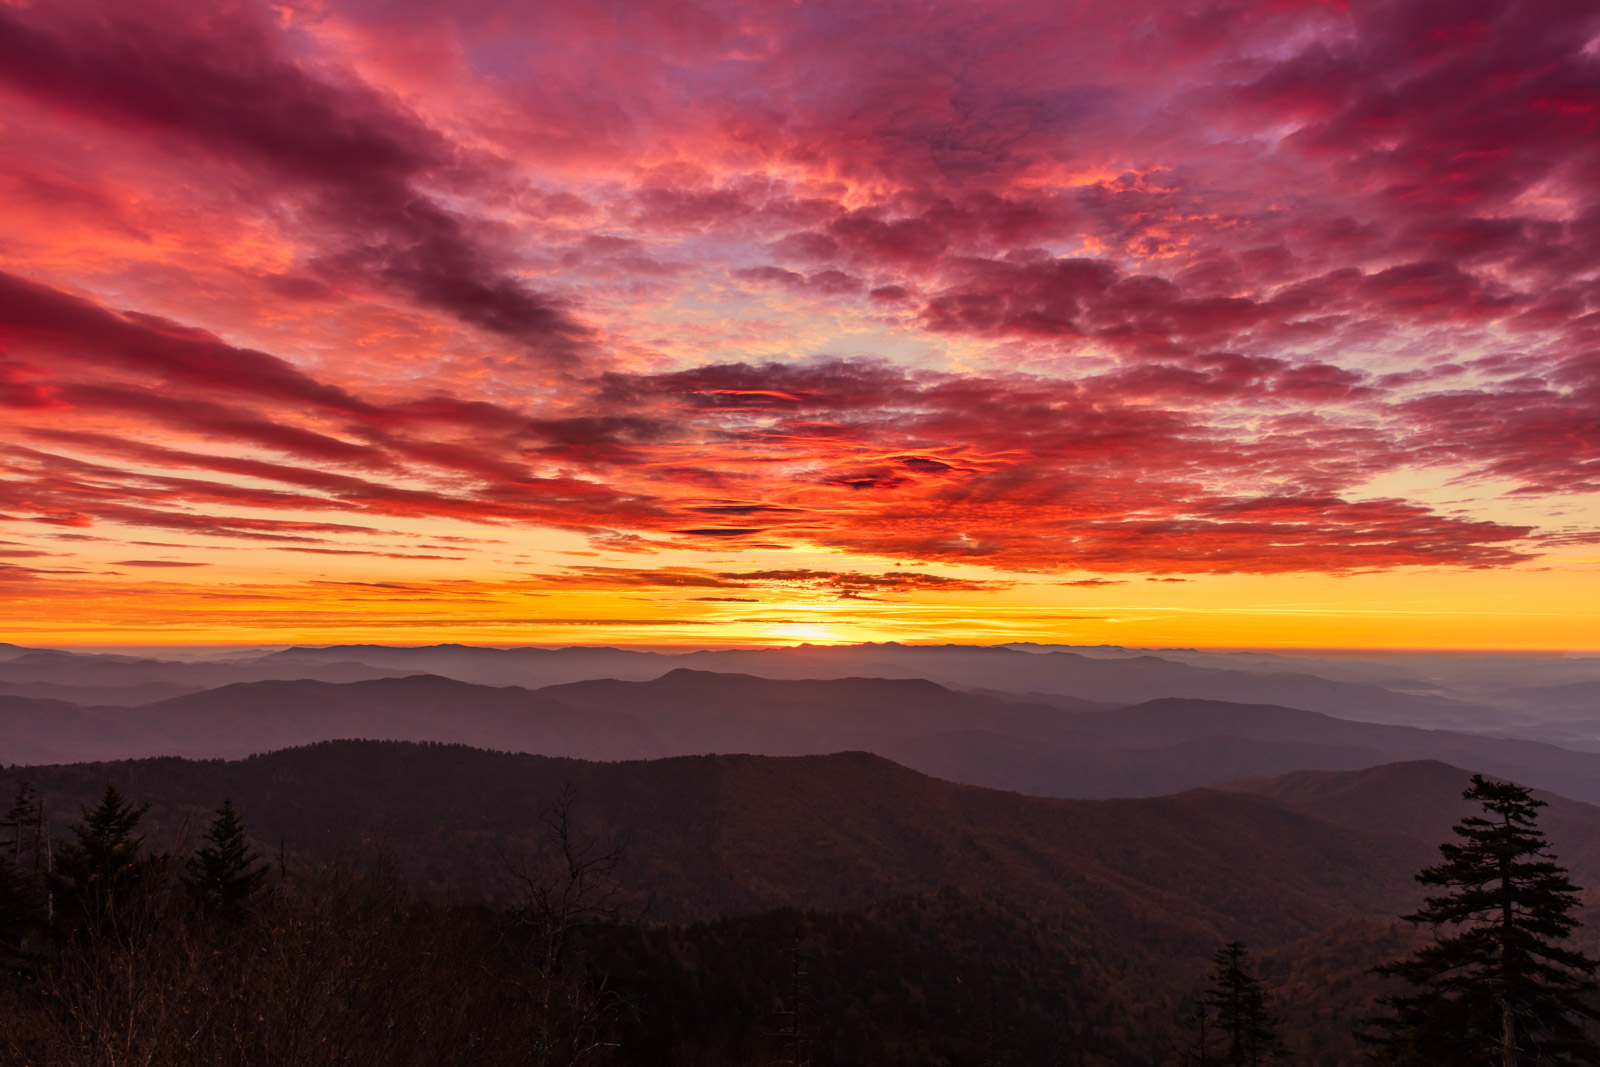 Tennessee, Smoky Mountains, Clingmans Dome, Sunset